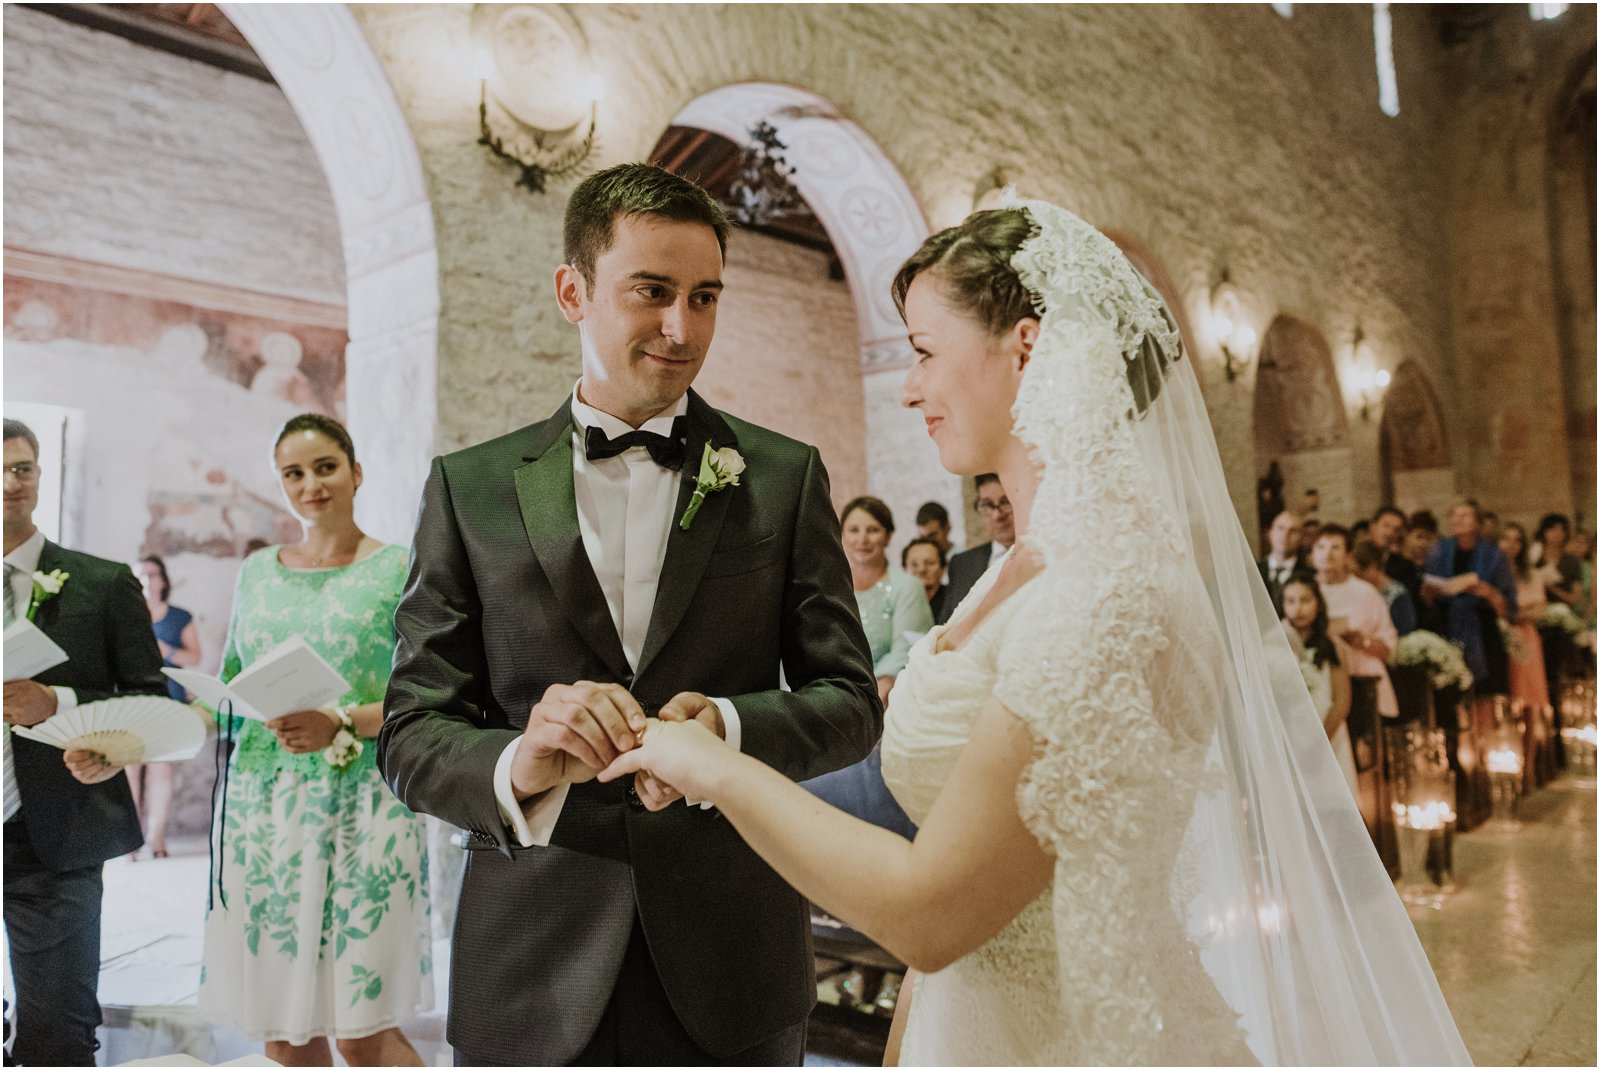 veronasposi foto e video matrimonio verona_0567